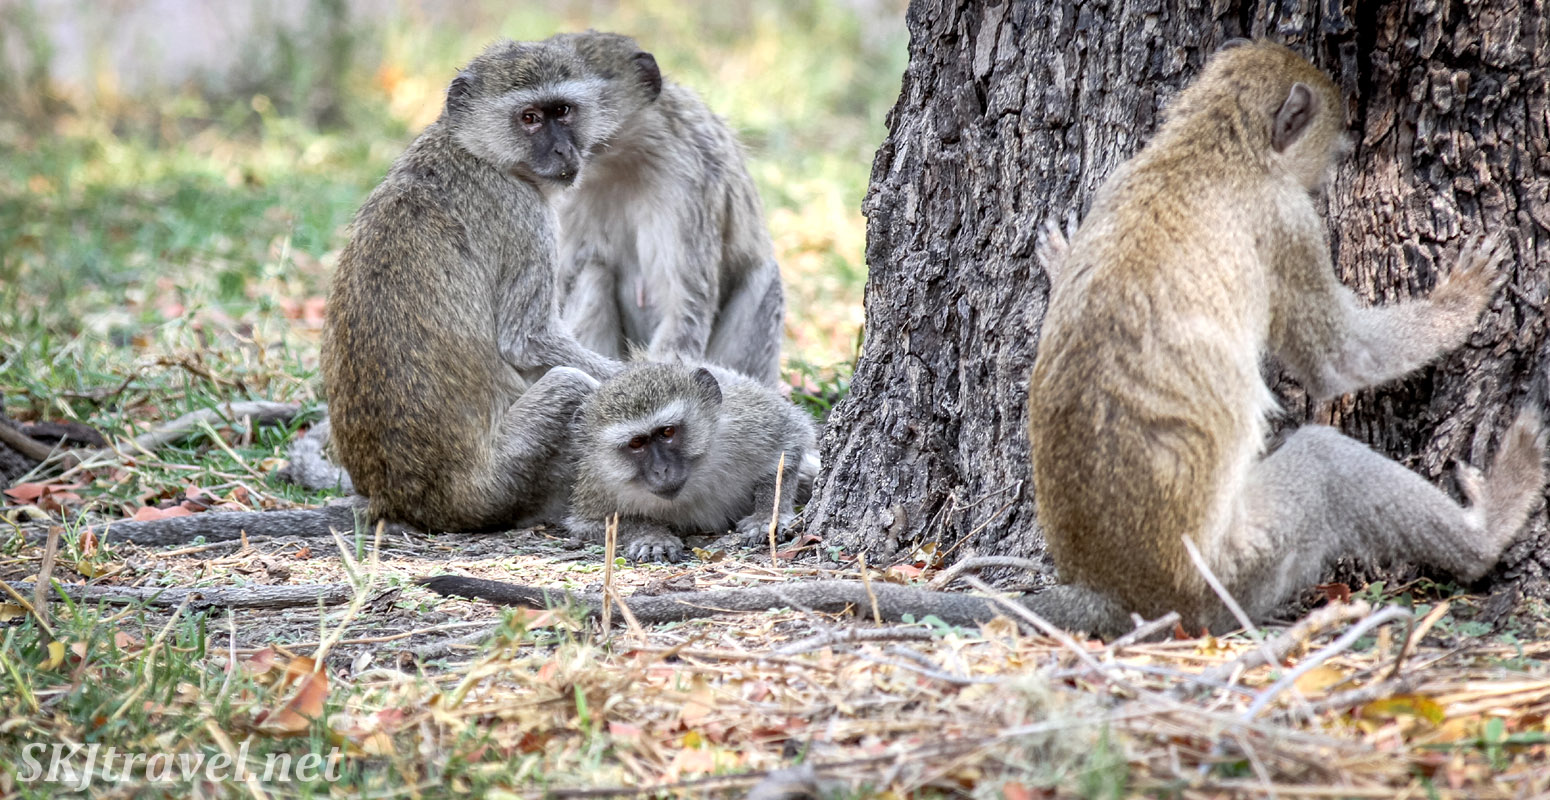 Vervet monkey in time-out against a tree in the woodlands of Moremi Game Reserve, Botswana. Must have been a naughty monkey.